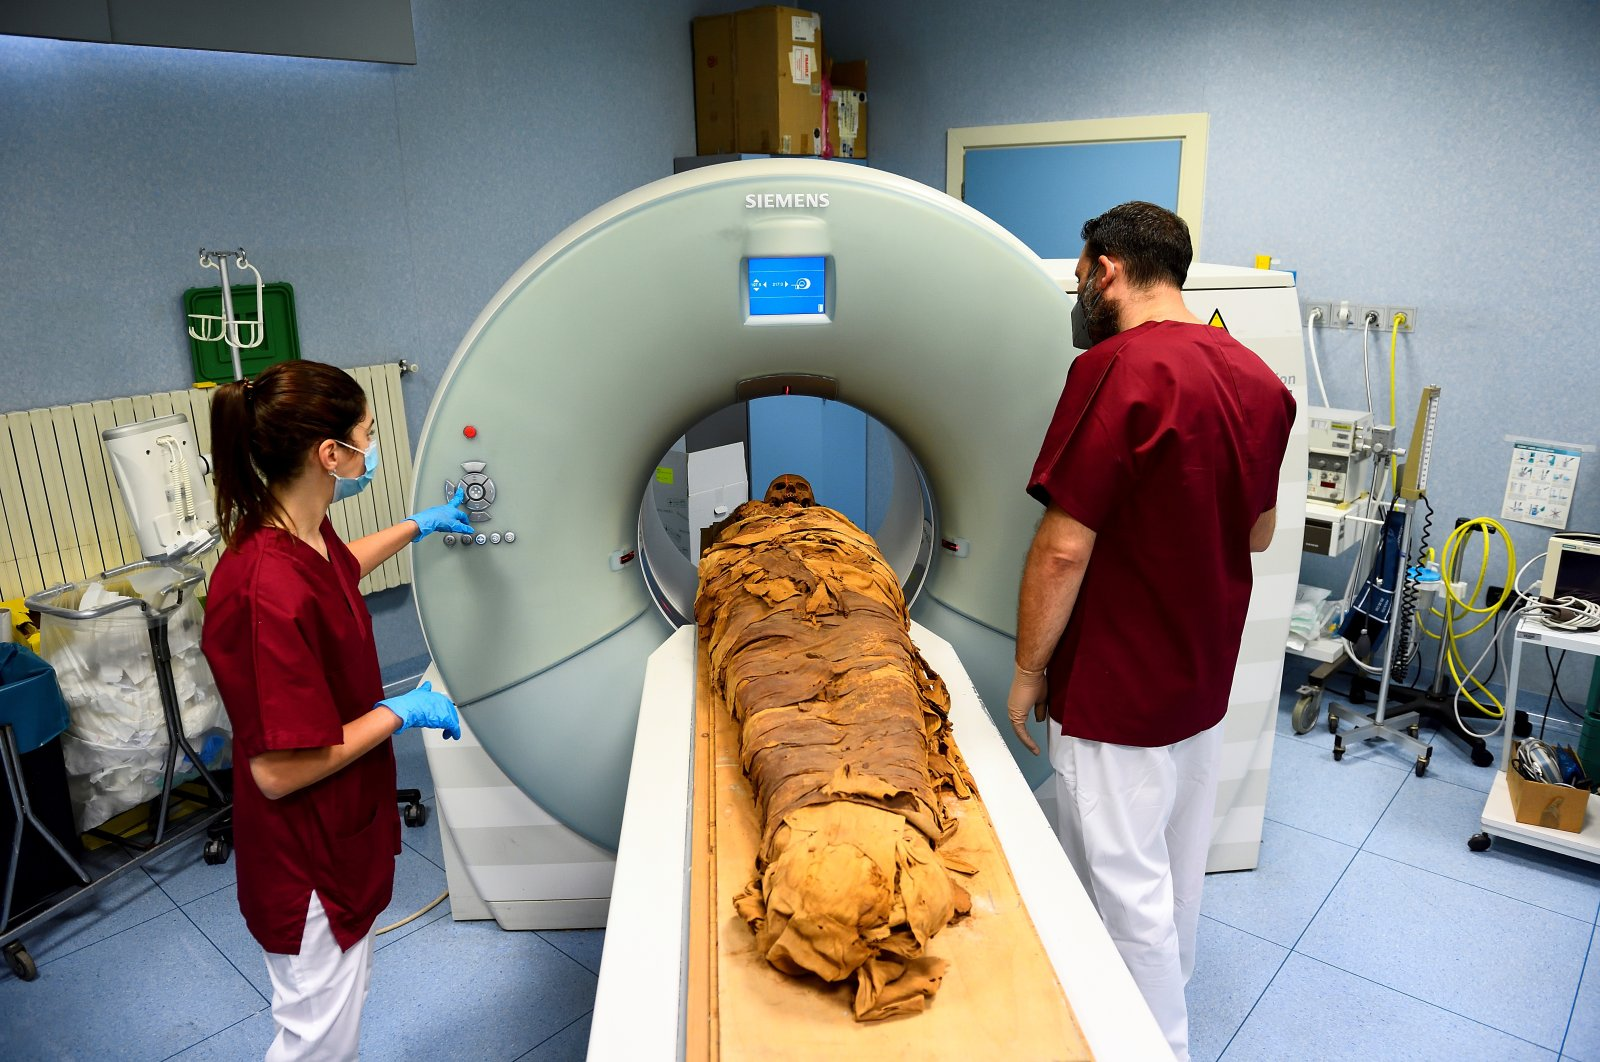 Medical radiology technicians prepare a CT scan to do a radiological examination of an Egyptian mummy in order to investigate its history at the Policlinico hospital in Milan, Italy, June 21, 2021. (Reuters Photo)